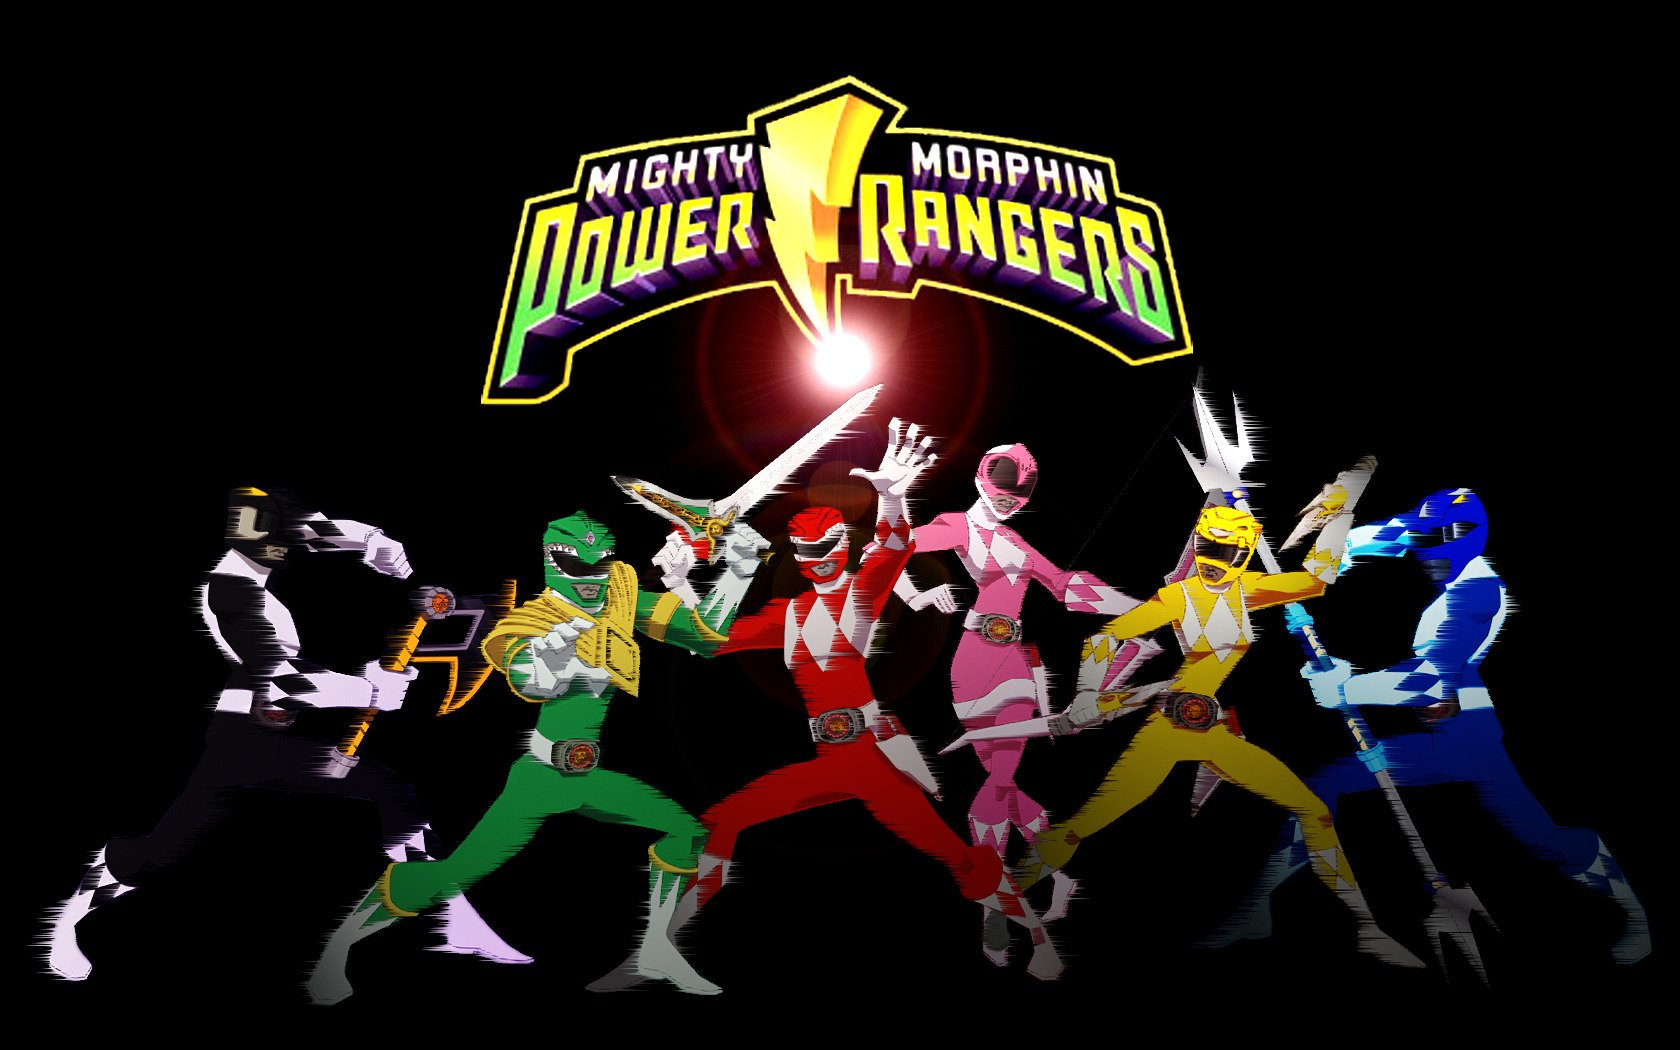 Power Rangers Hd Wallpapers Posted By Samantha Johnson